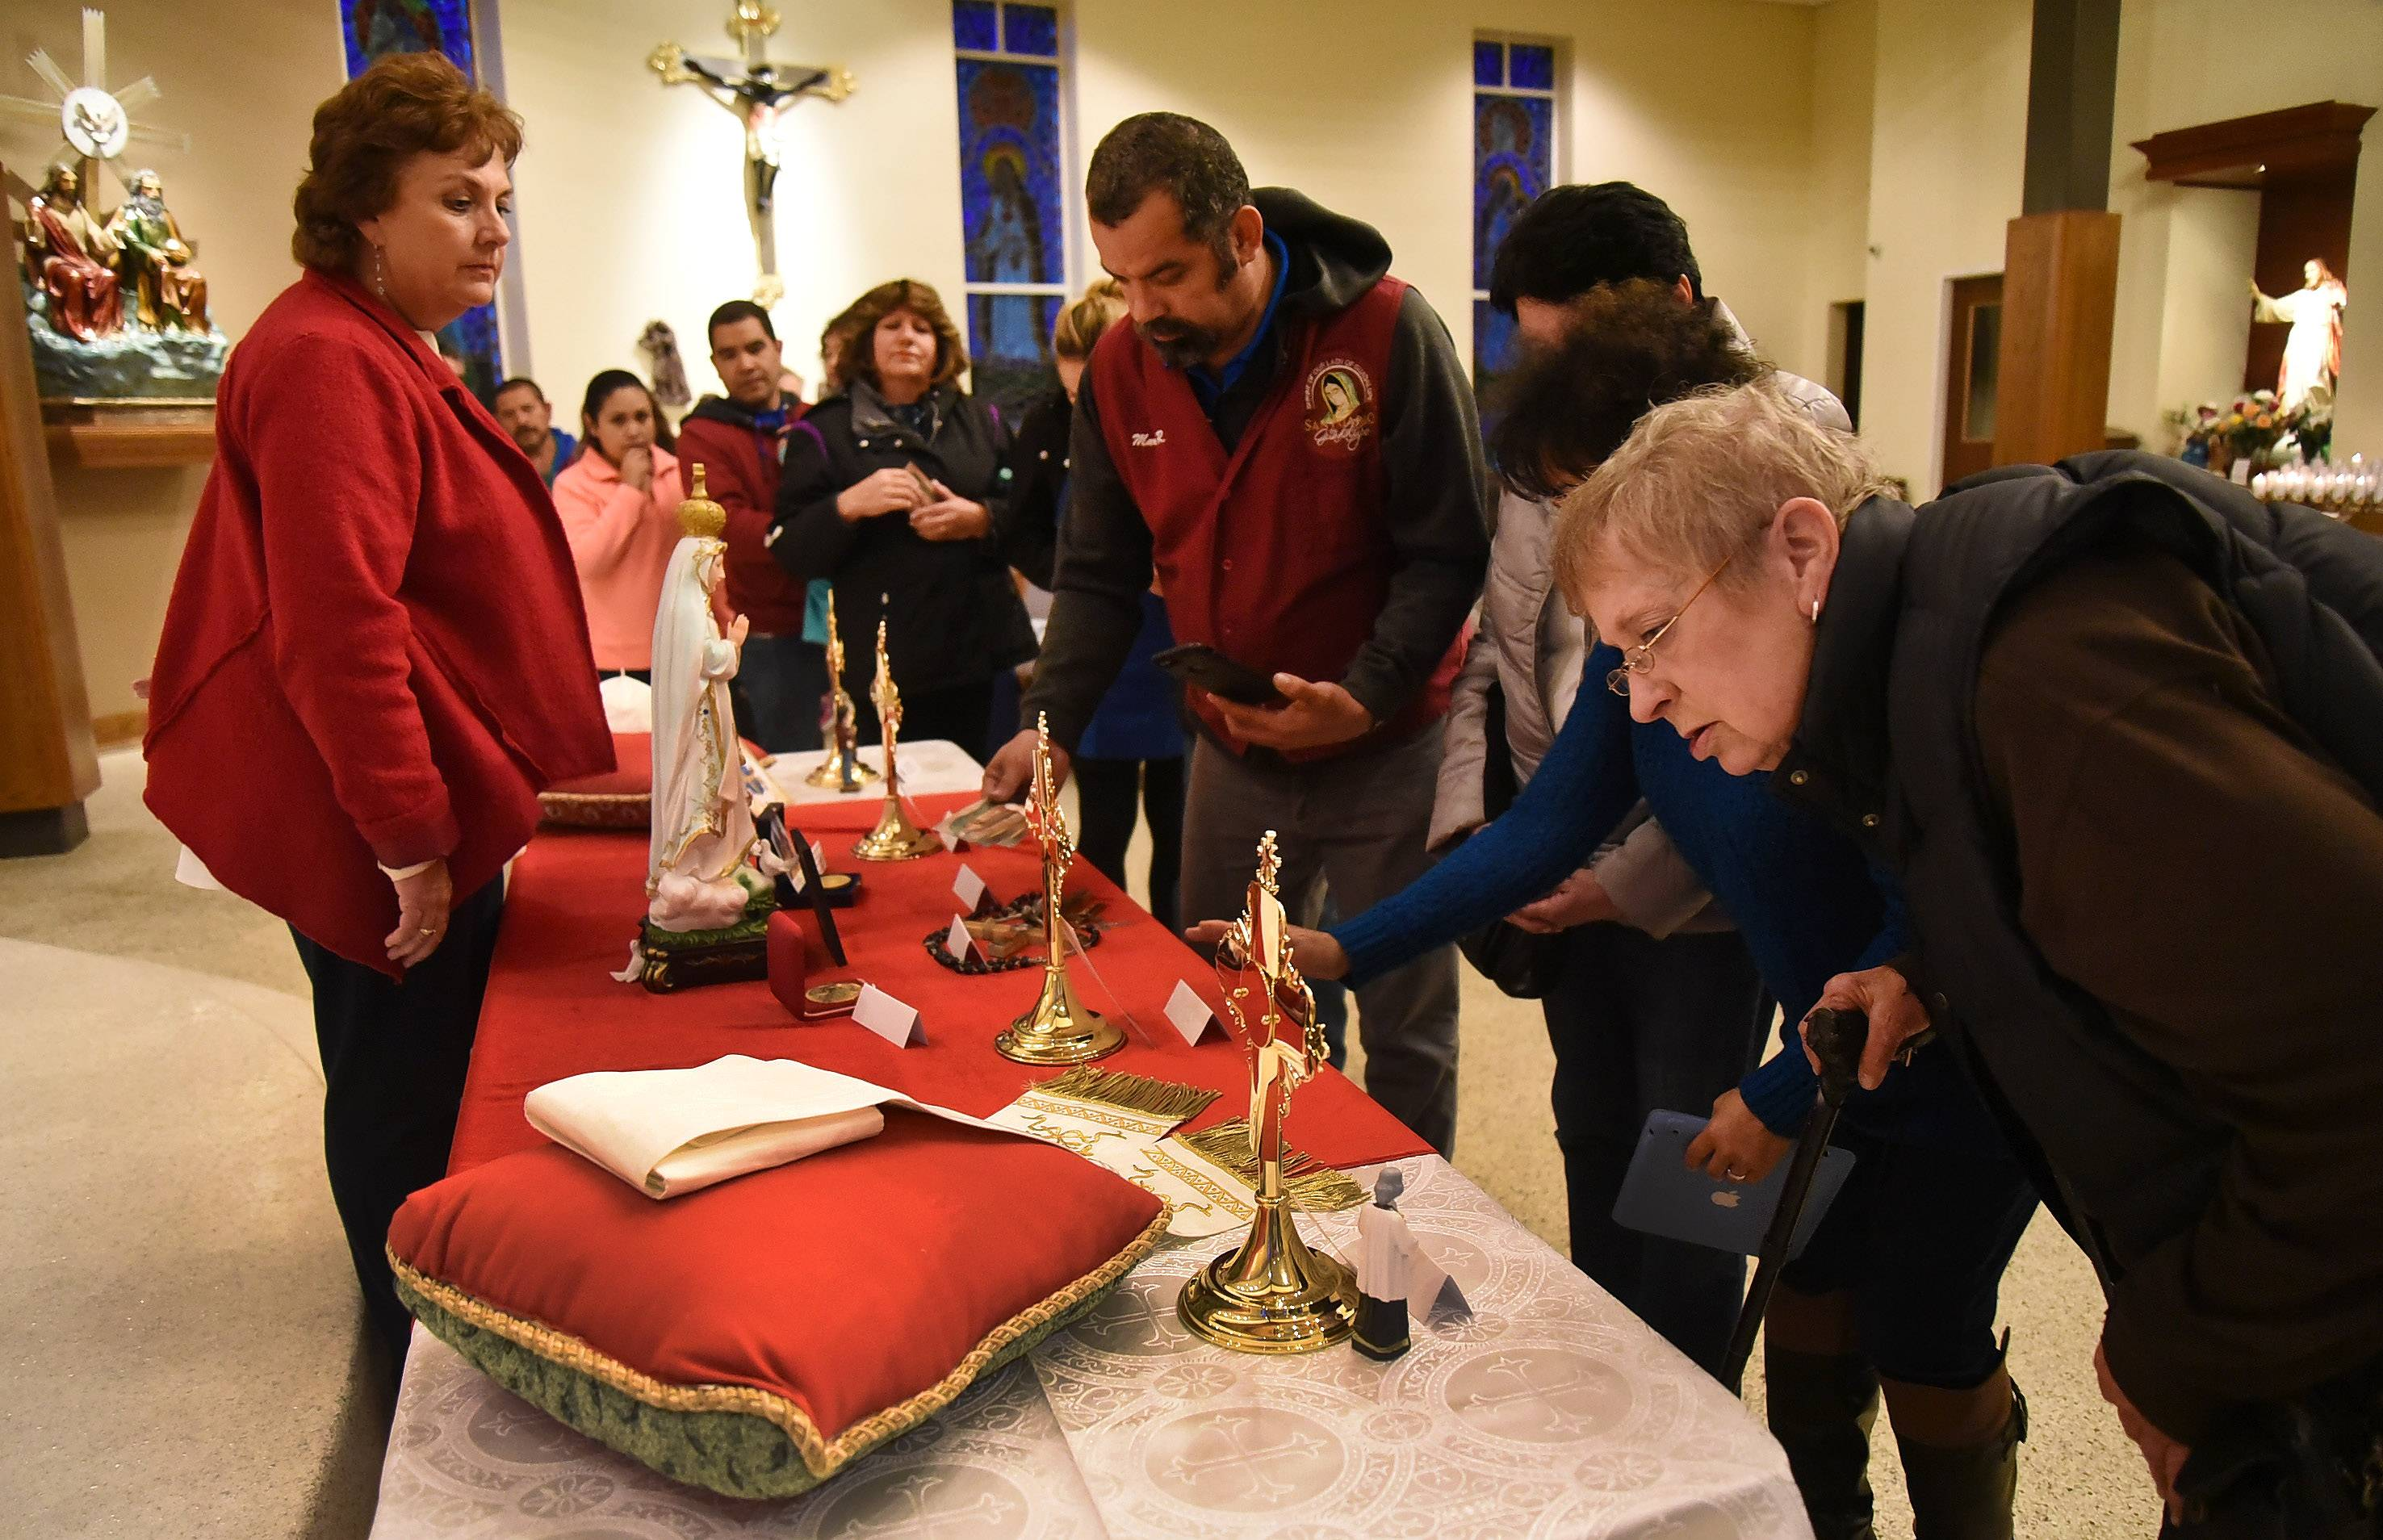 Eileen Wright of Des Plaines, right, gets a closer look at some of the relics.